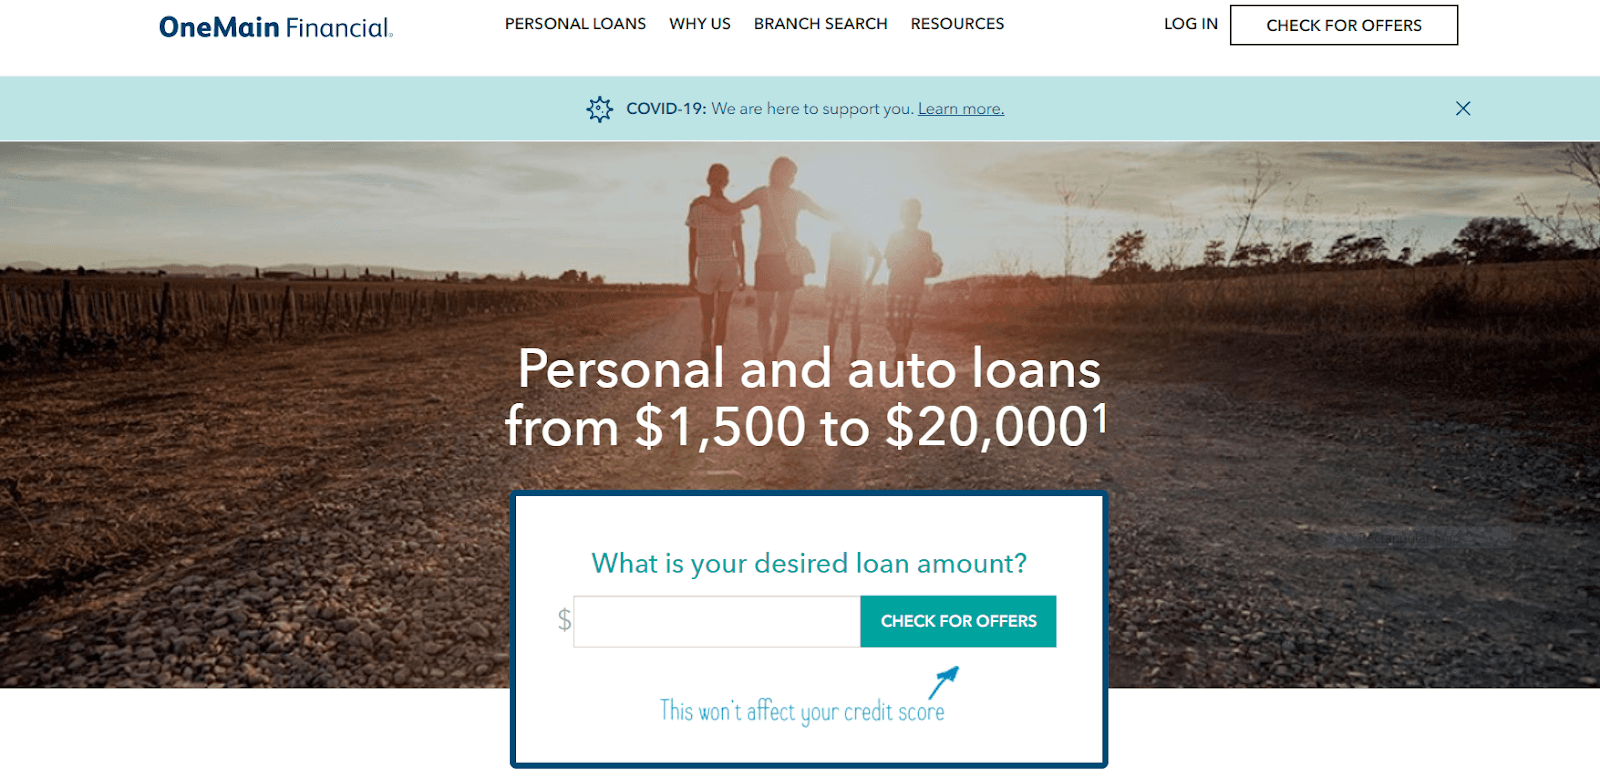 OneMain Financial: Fast, Simple Loans for Average or Poor Credit - Check for offers